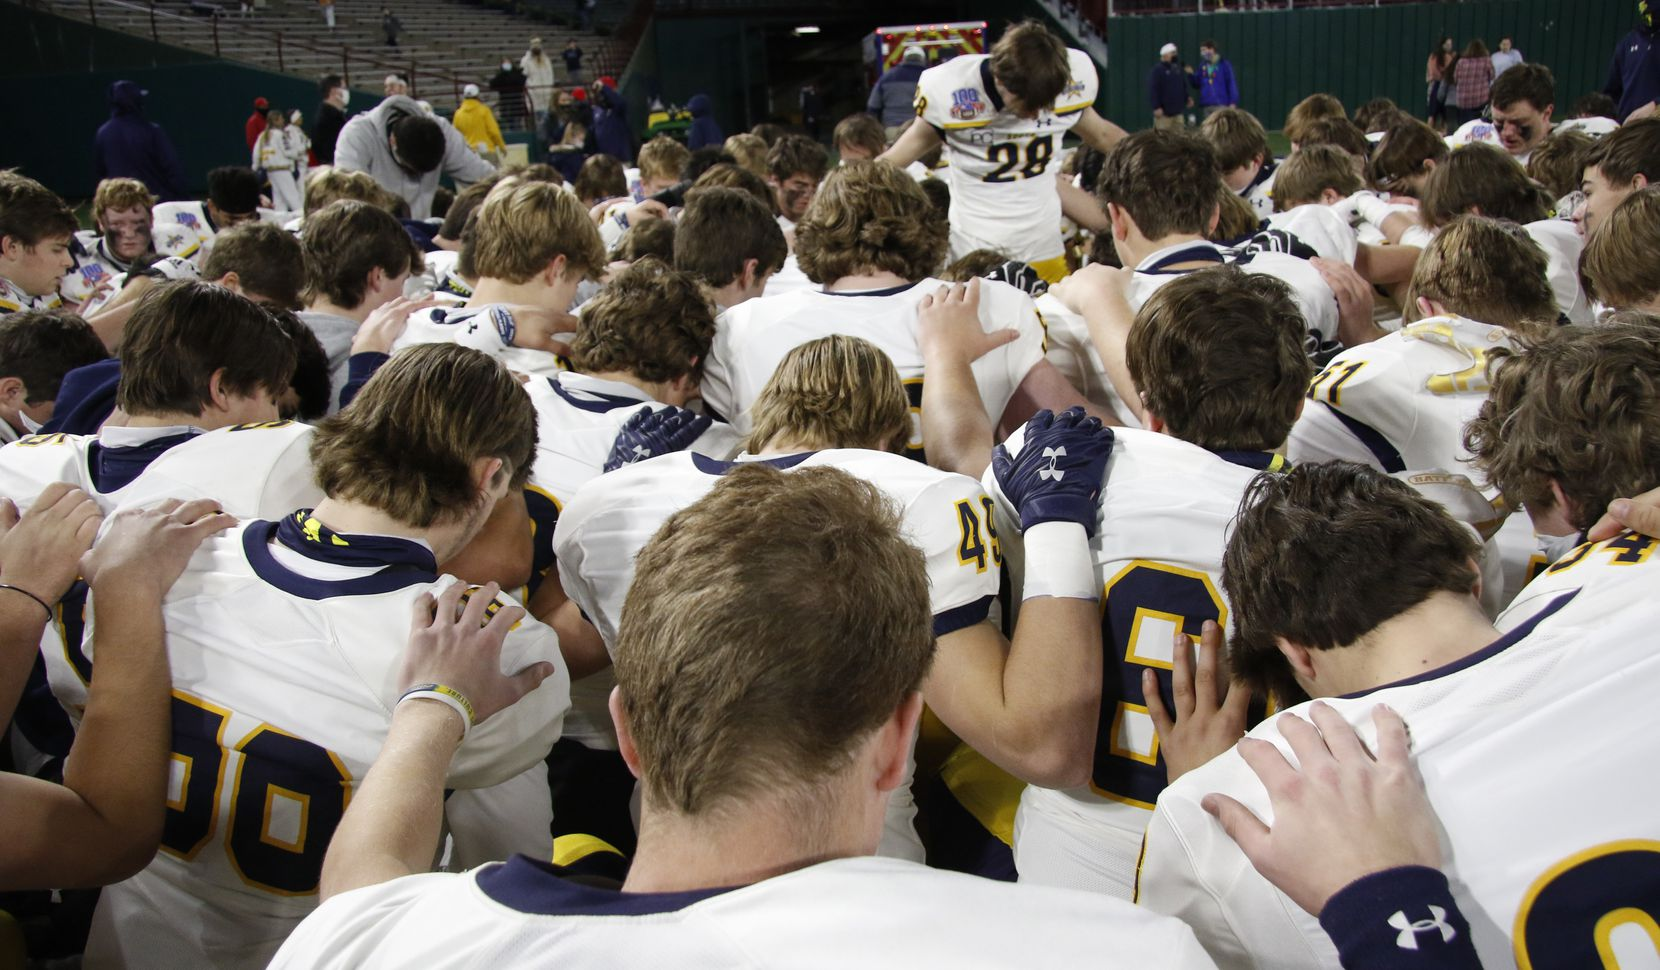 Highland Park Scots players take a knee as they are led by defensive back Ford Frazar (28) in a team prayer following their 30-20 victory over Frisco Lone Star to advance. The two teams played their Class 5A Division l Region ll semifinal football playoff game held at Globe Life Park in Arlington on December 24, 2020. (Steve Hamm/ Special Contributor)